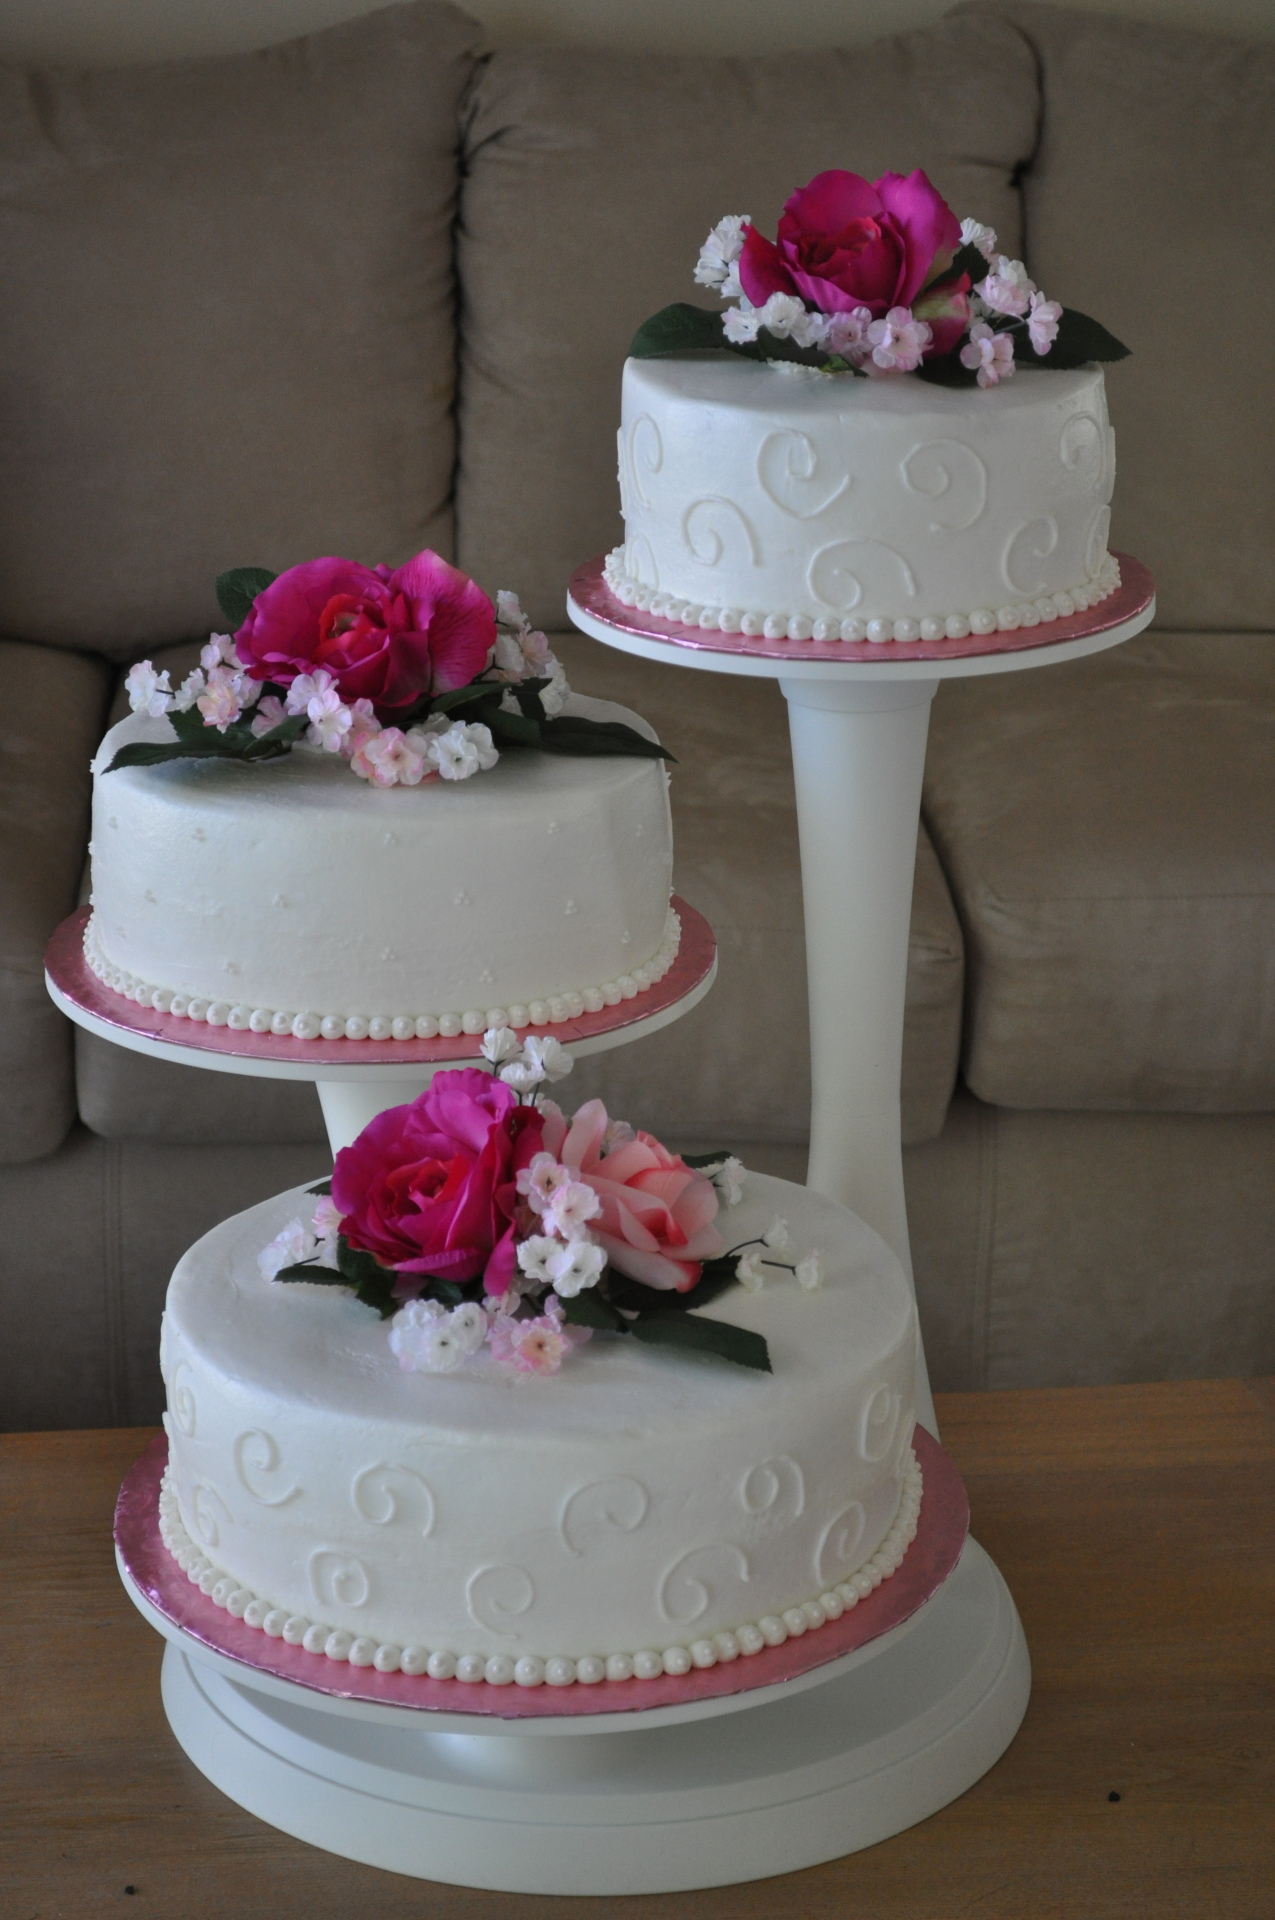 3 Cascading tiers with pink silk flowers